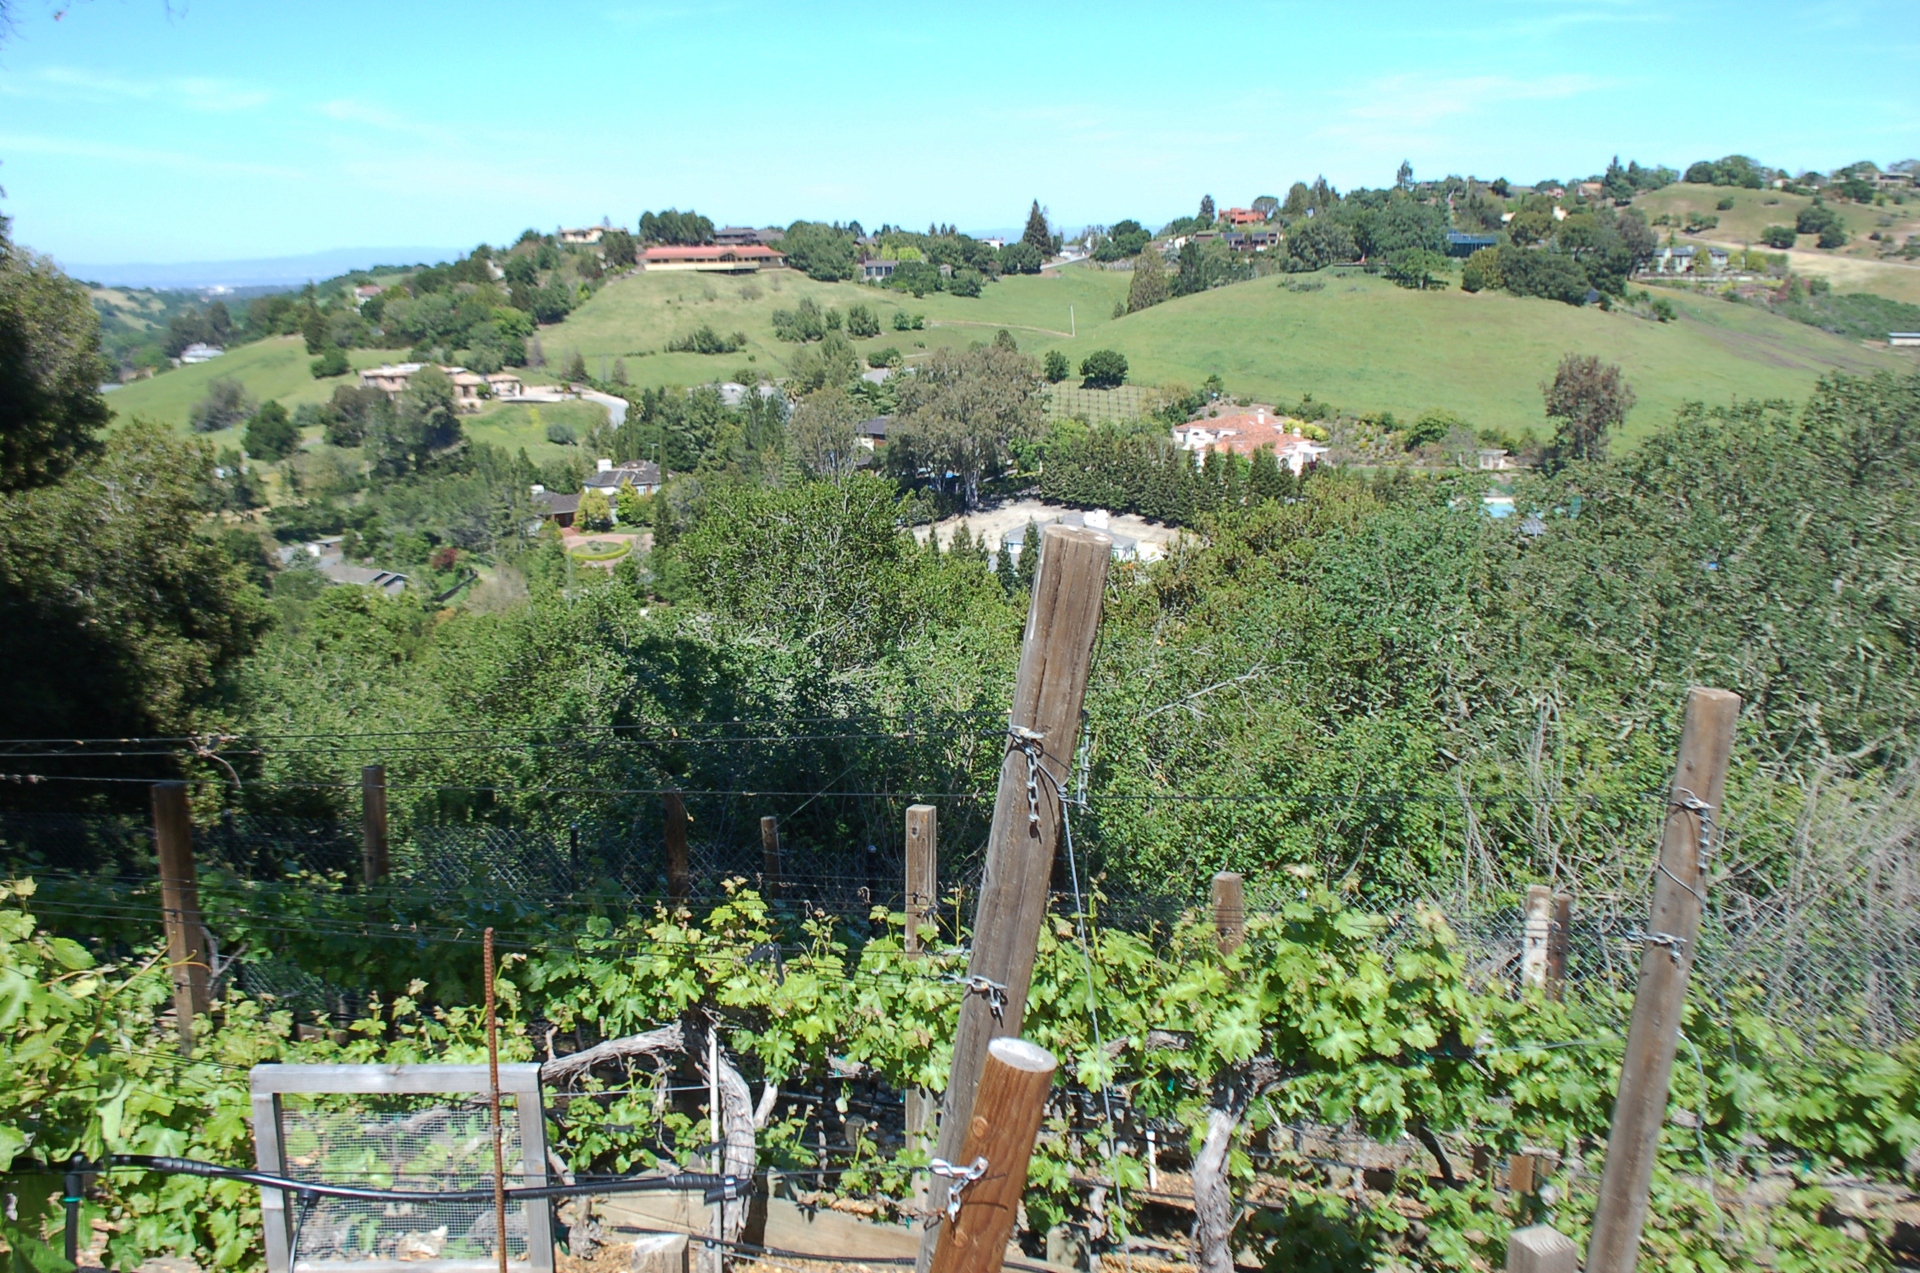 Scott Bryan's 300 vines and five varietals in Los Altos Hills overlooks some neighboring wine estates in this town where vineyards are booming.